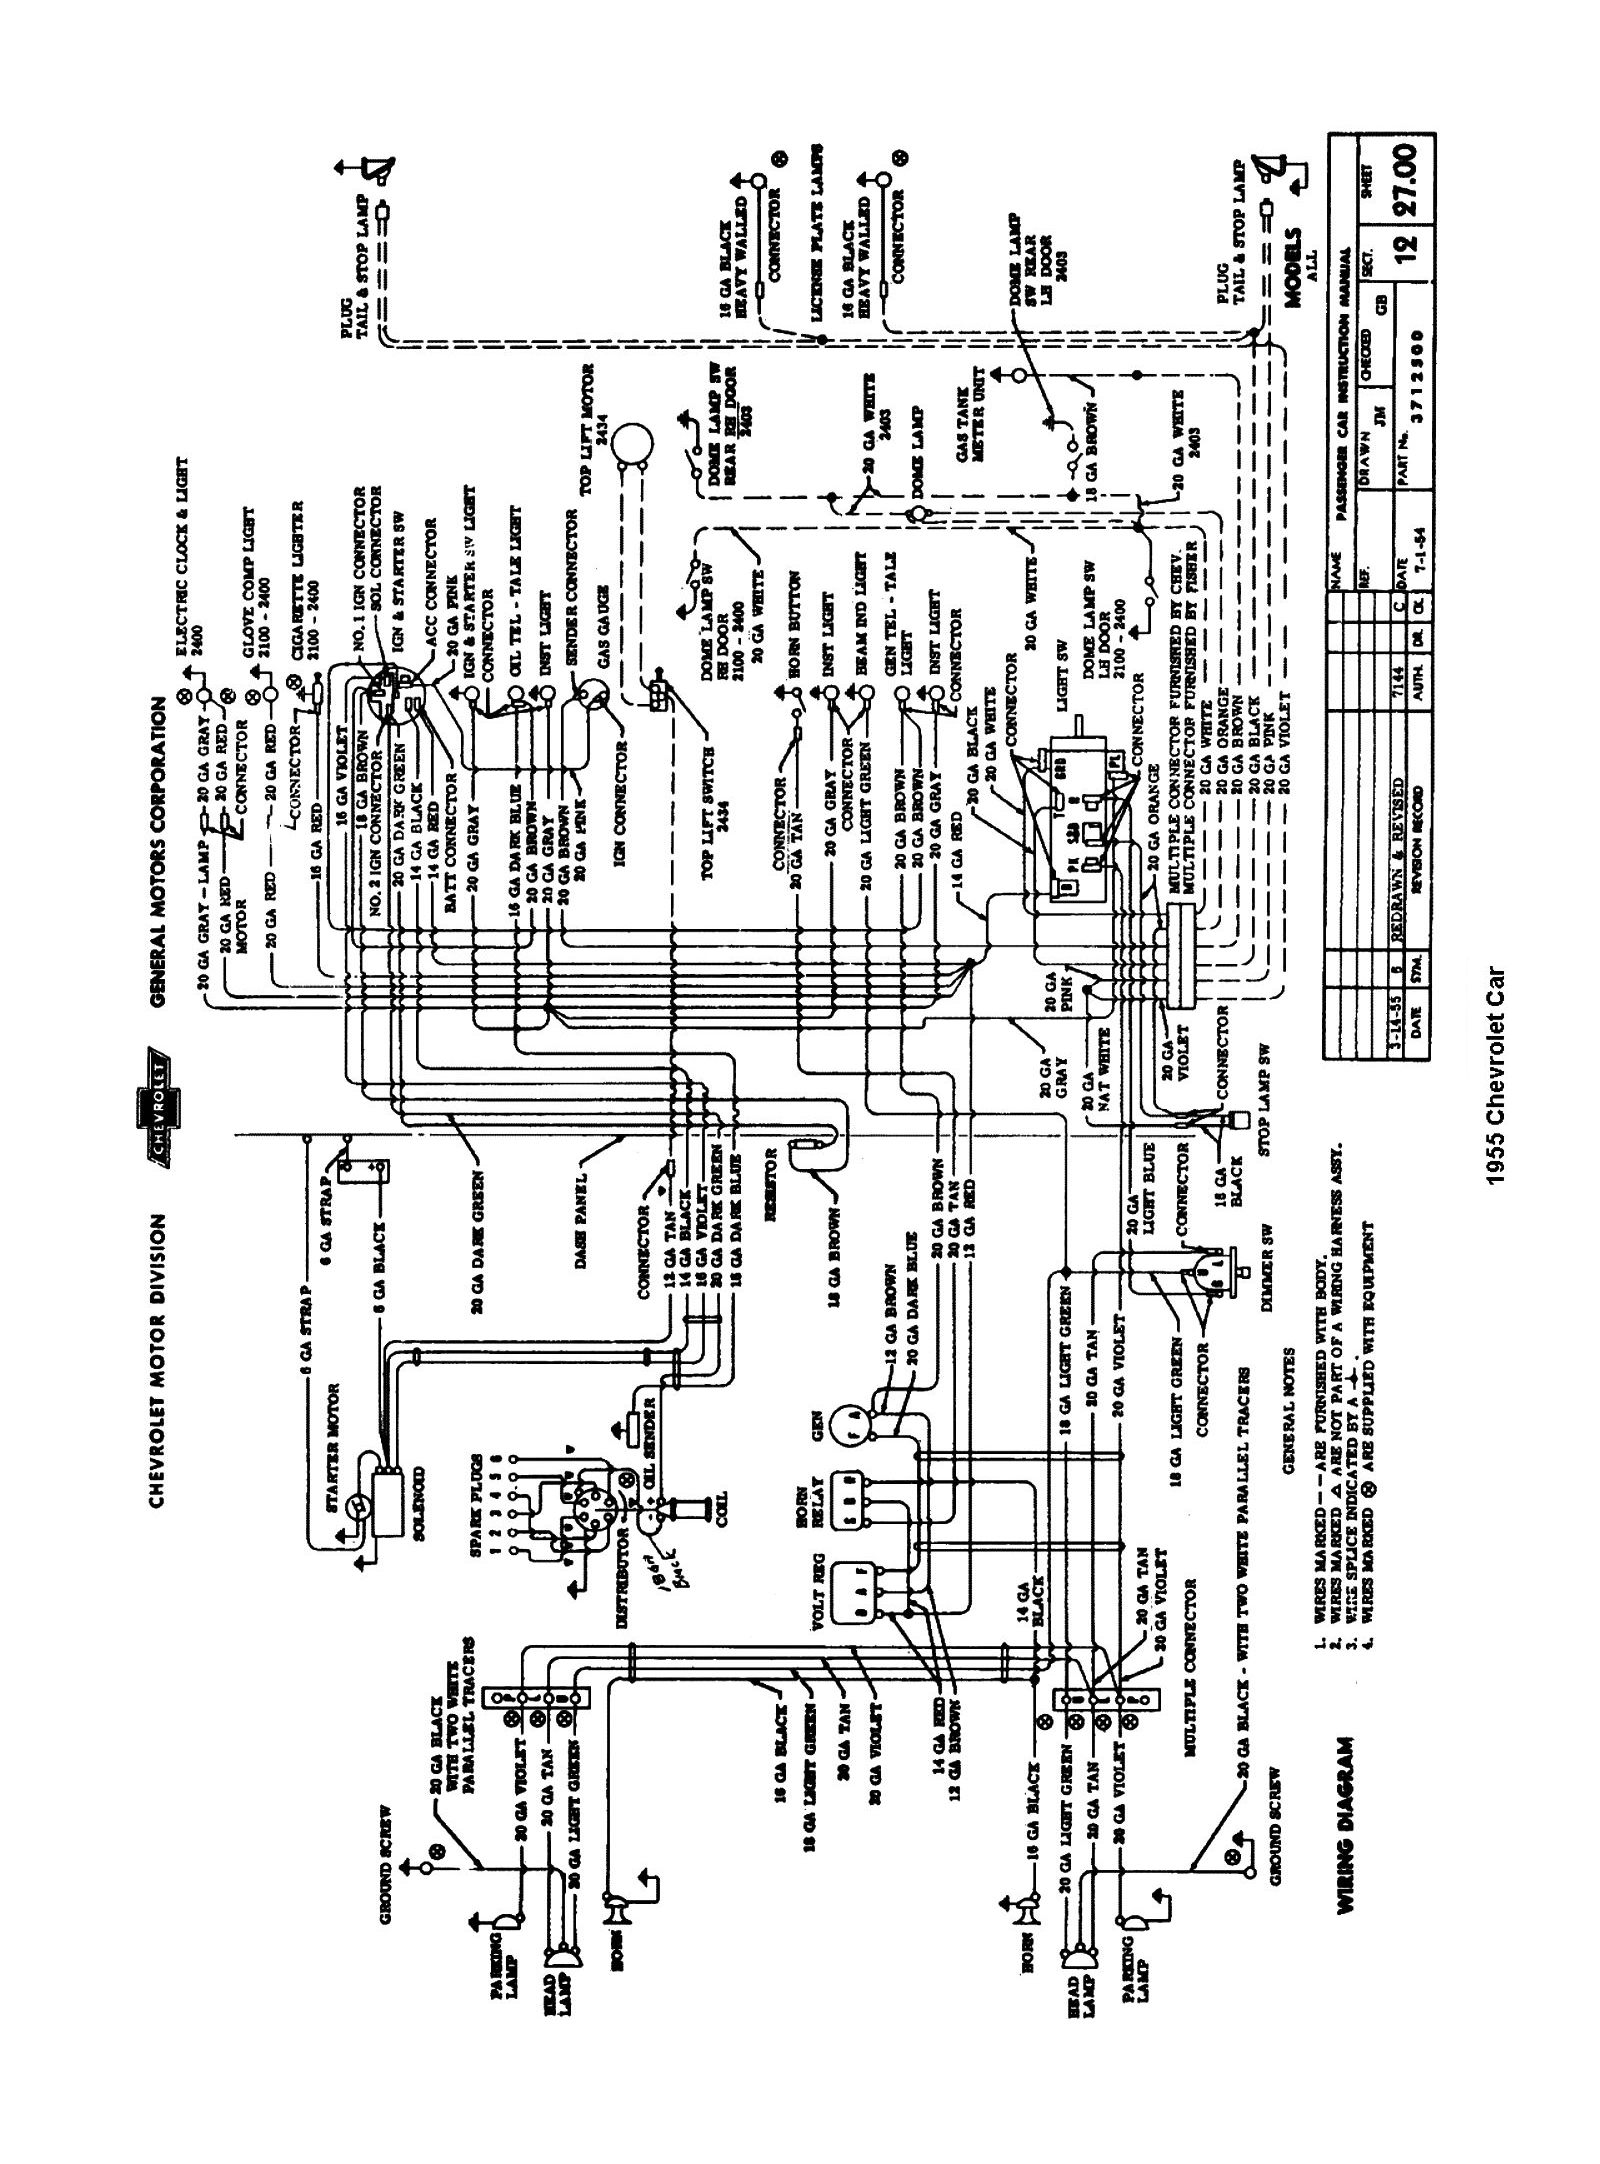 Chevy Wiring diagramsOld Online Chevy Manuals